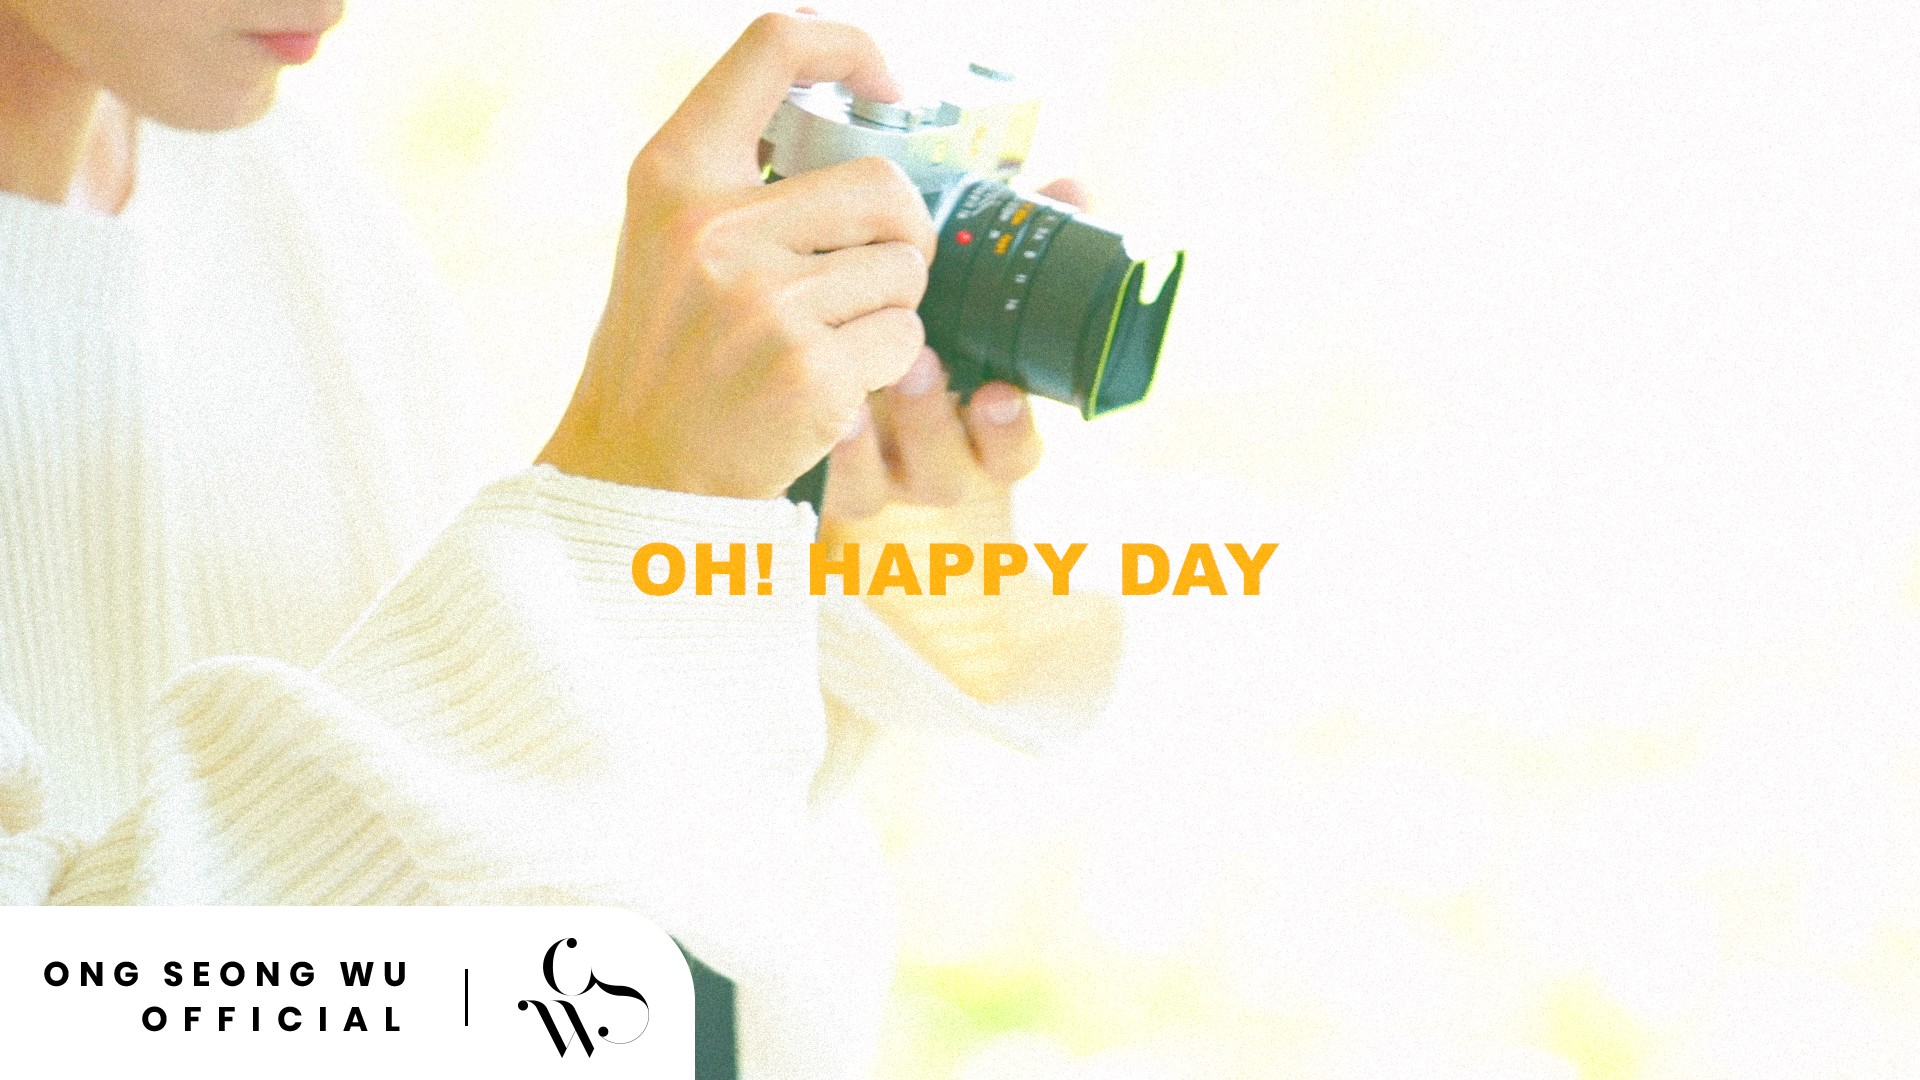 ONG SEONG WU 옹성우 - PHOTO EXHIBITION 'Oh! Happy Day' Teaser #1